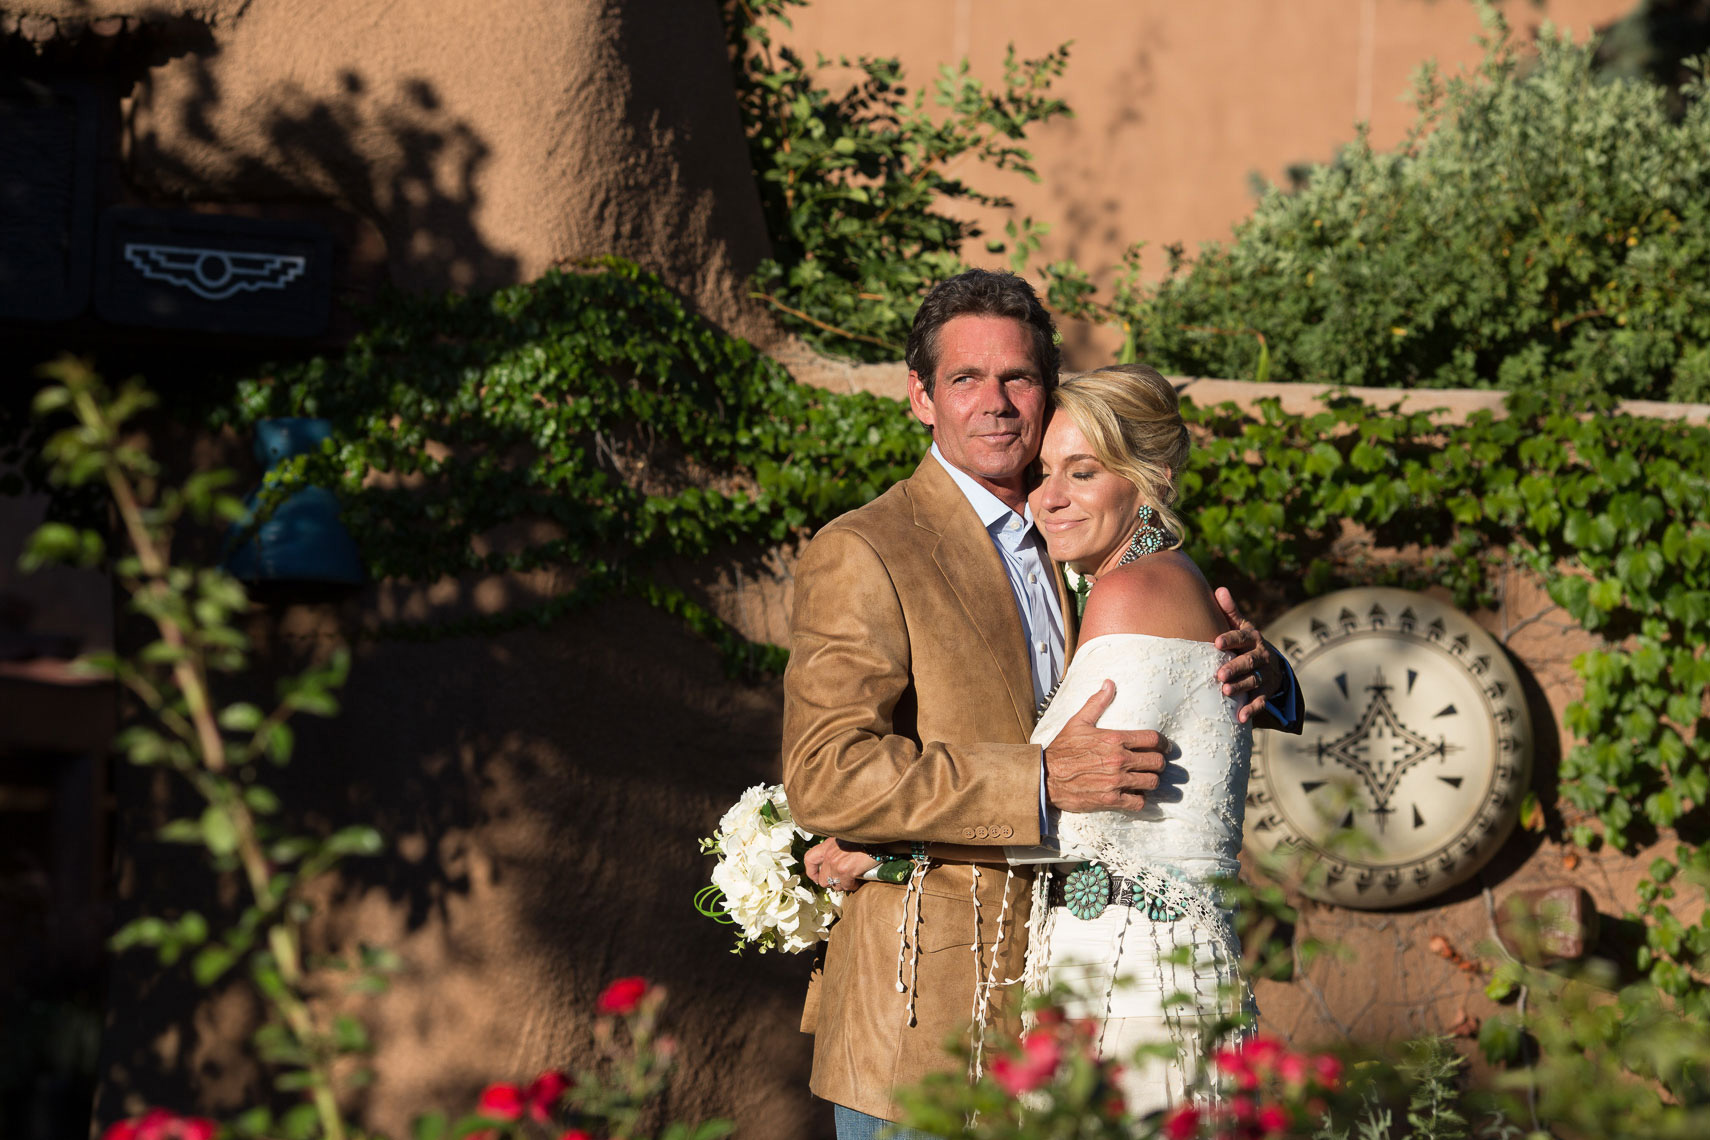 Wedding Couple at Inn of Loretto, Santa Fe with sunset light